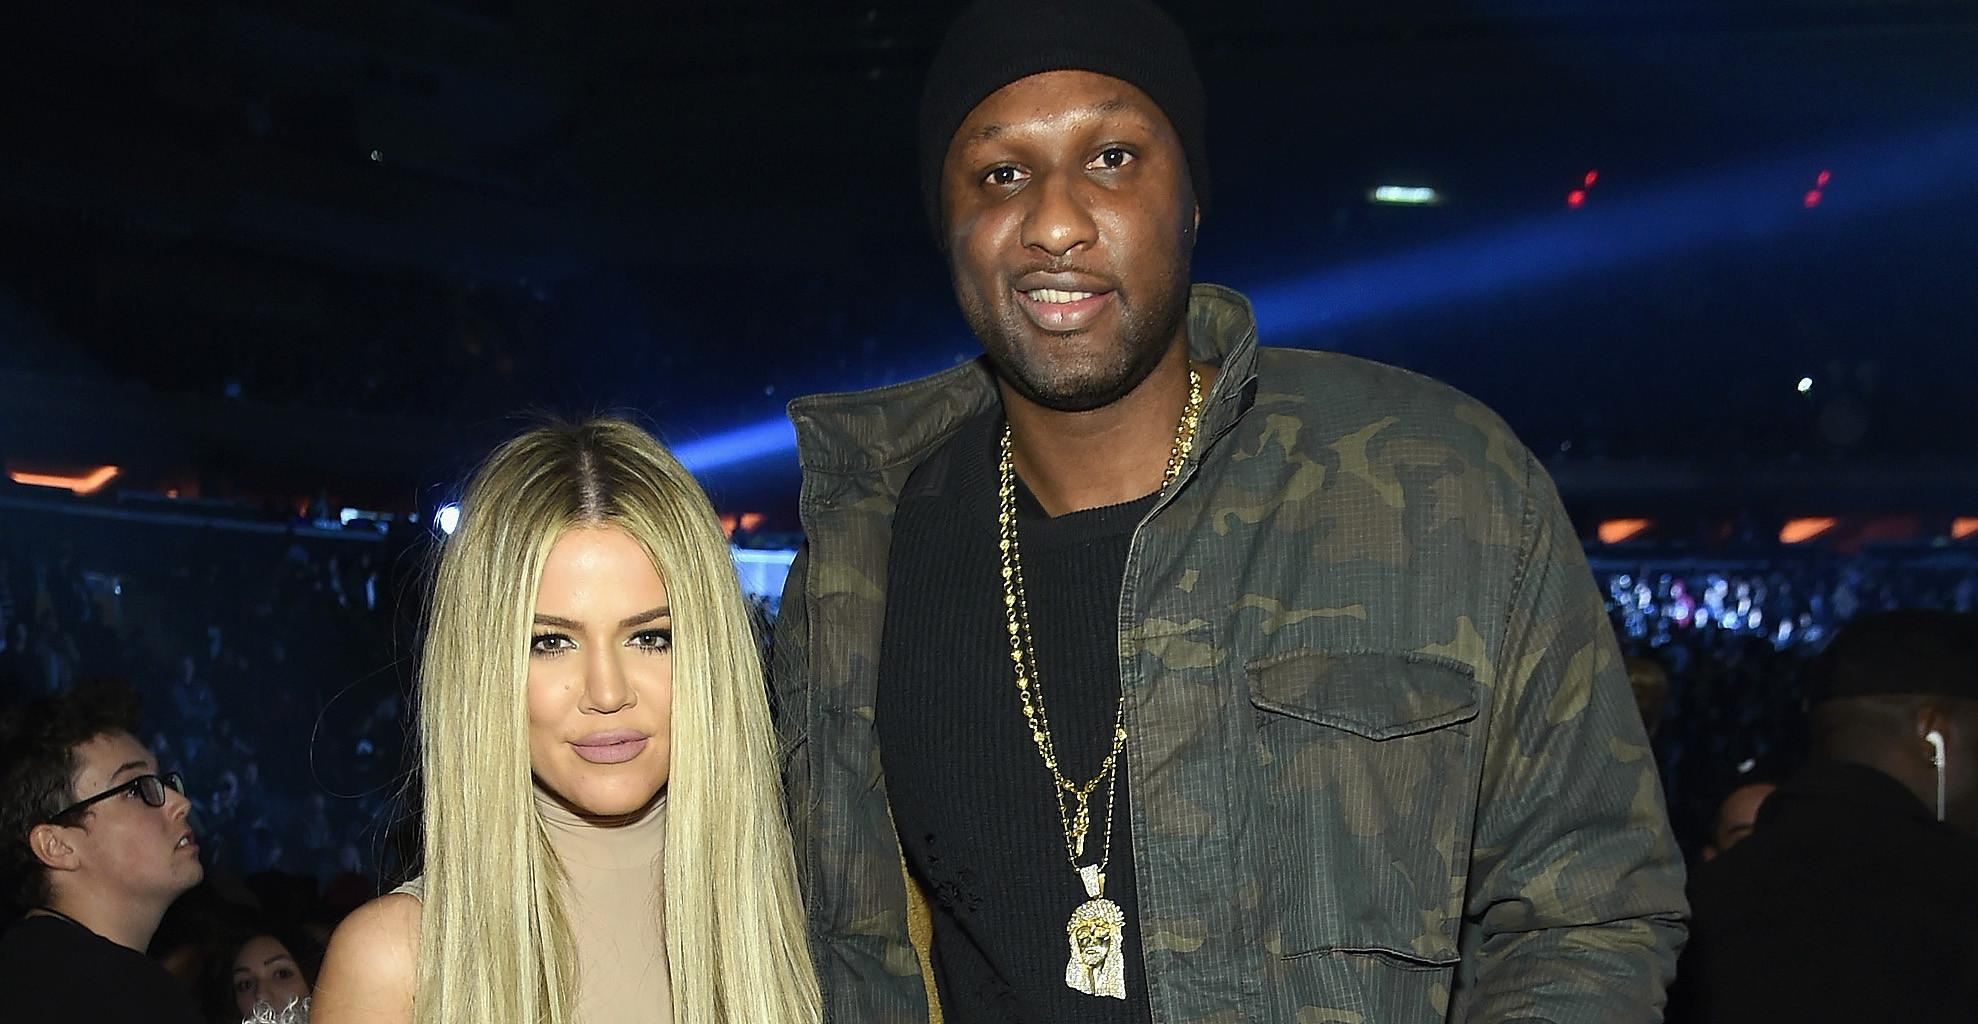 Lamar Odom Denies Dissing Former Wife Khloe Kardashian With Post About New Girlfriend - Says He Deeply Respects The KUWK Star